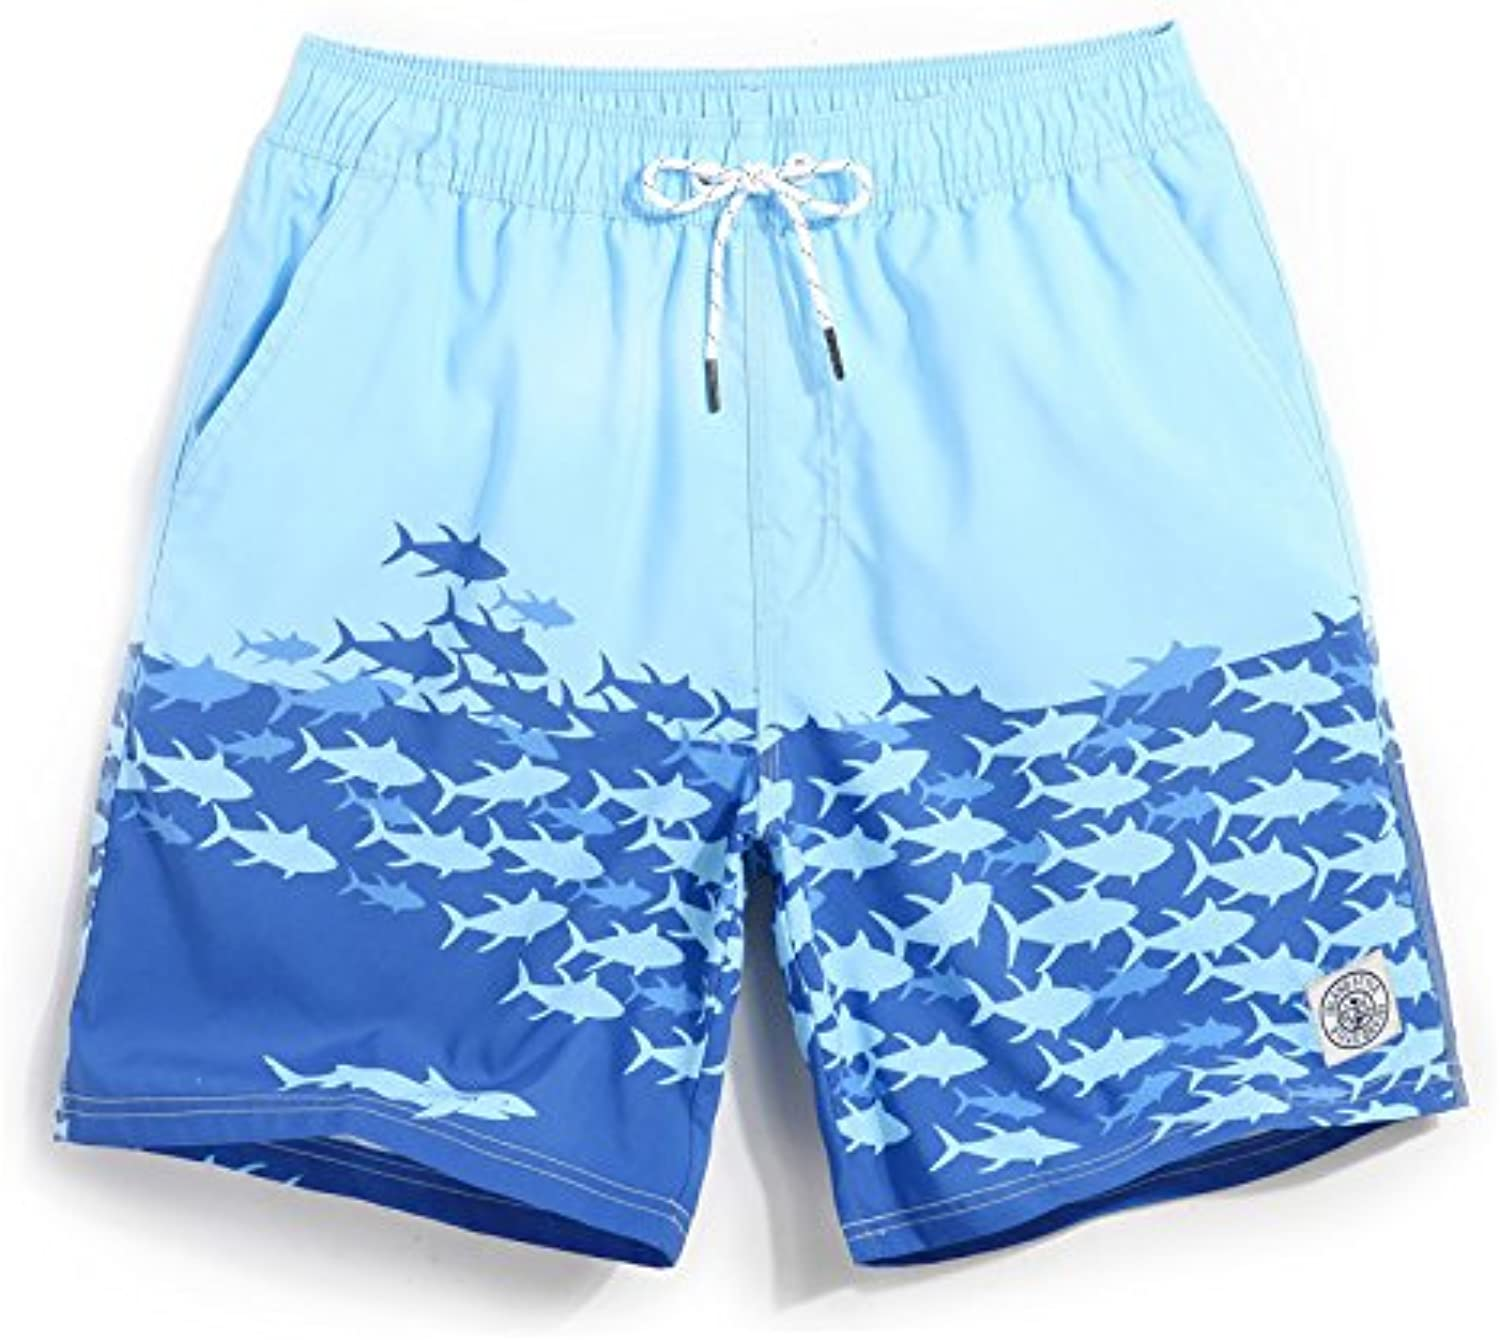 HAIYOUVK Beach pants men's quick-drying loose large size printing casual shorts hot spring shorts male Boxer swimming trunks with lining